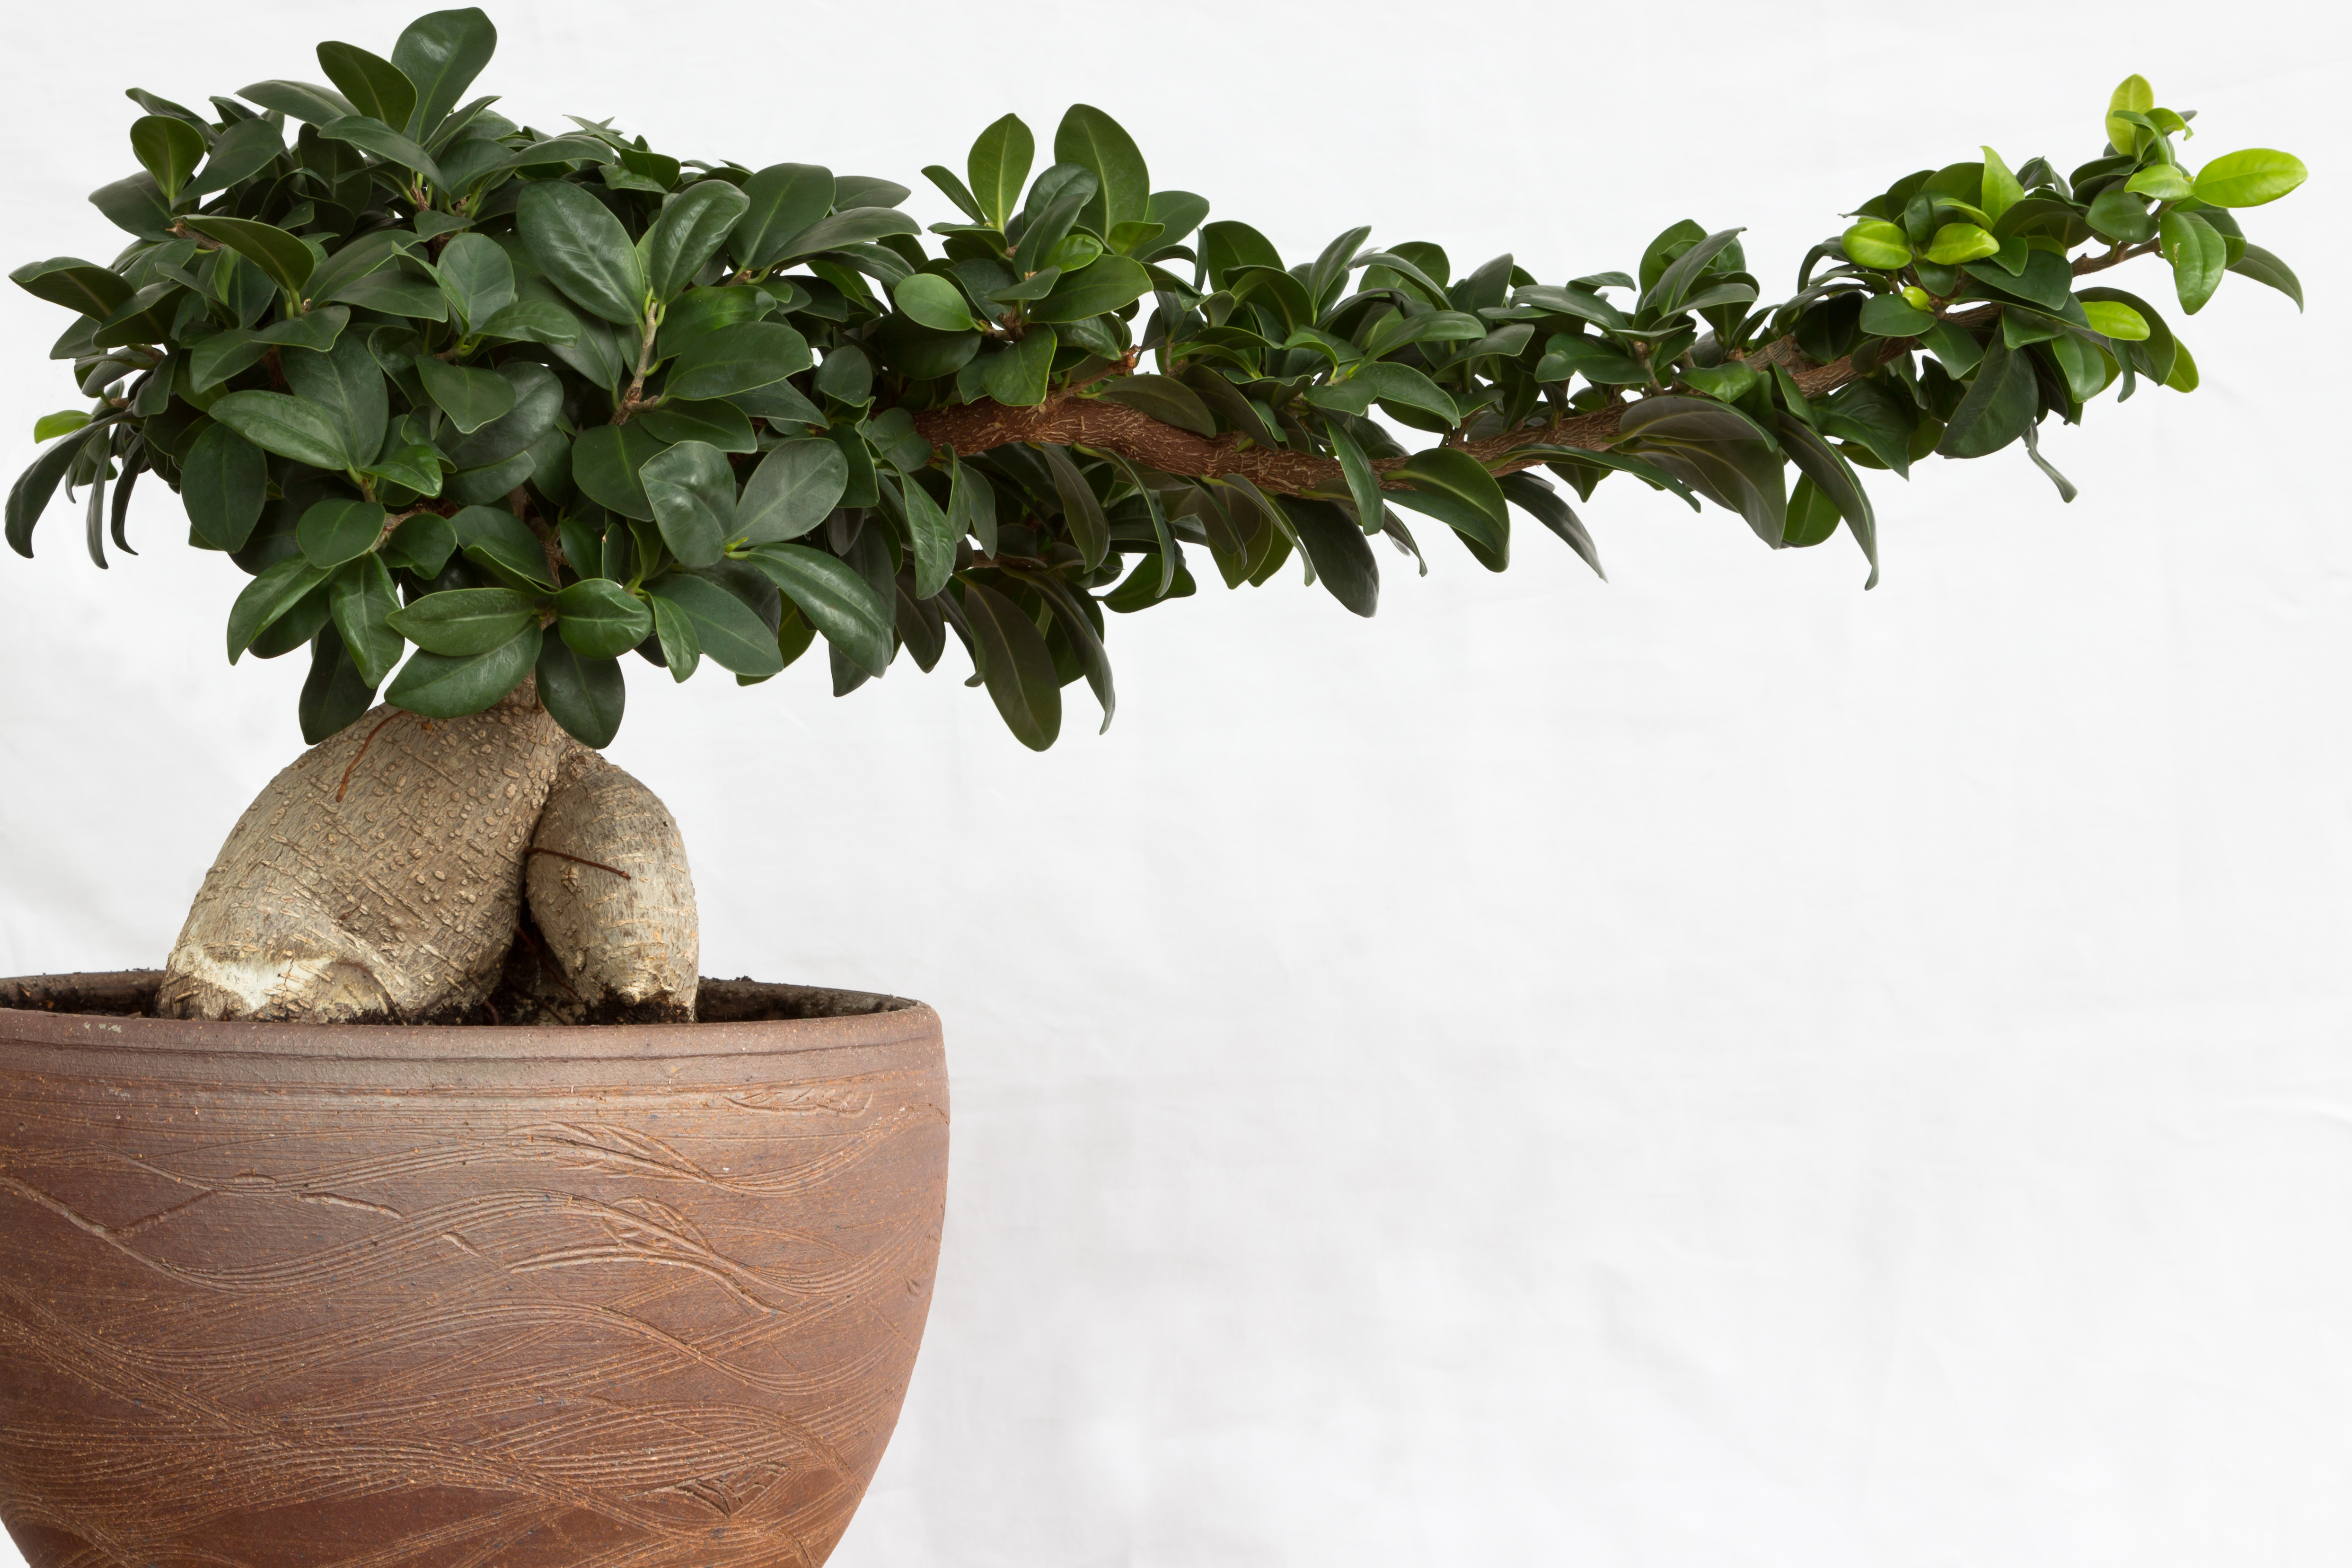 Ginseng Baum Bonsai Ginseng A Symbol For The Asian Culture Bonsai